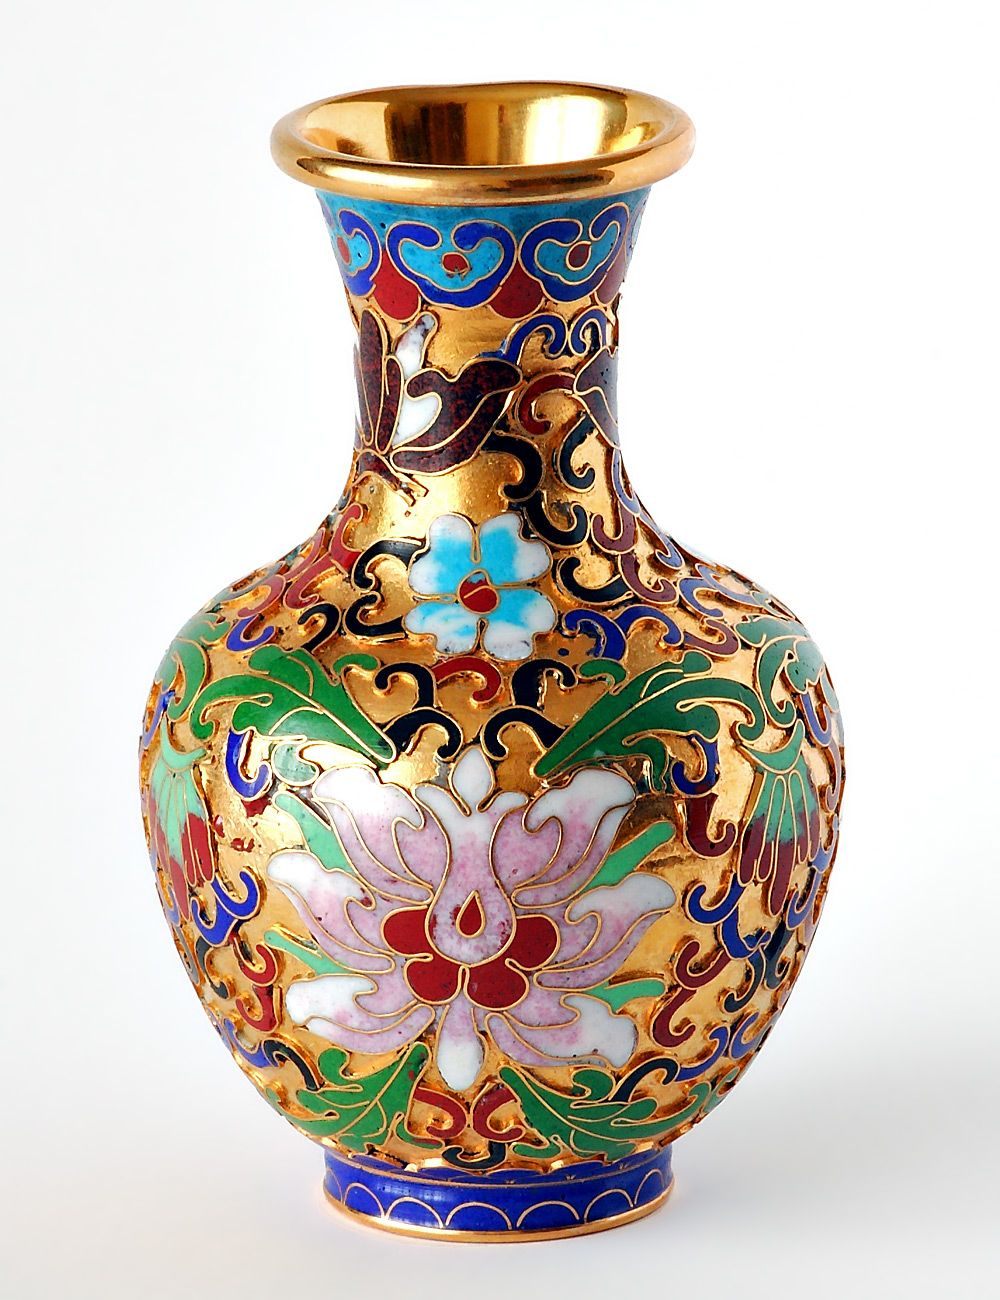 Chinese Vase ♥___________________________ Reposted by Dr. Veronica Lee, DNP (Depew/Buffalo, NY, US)